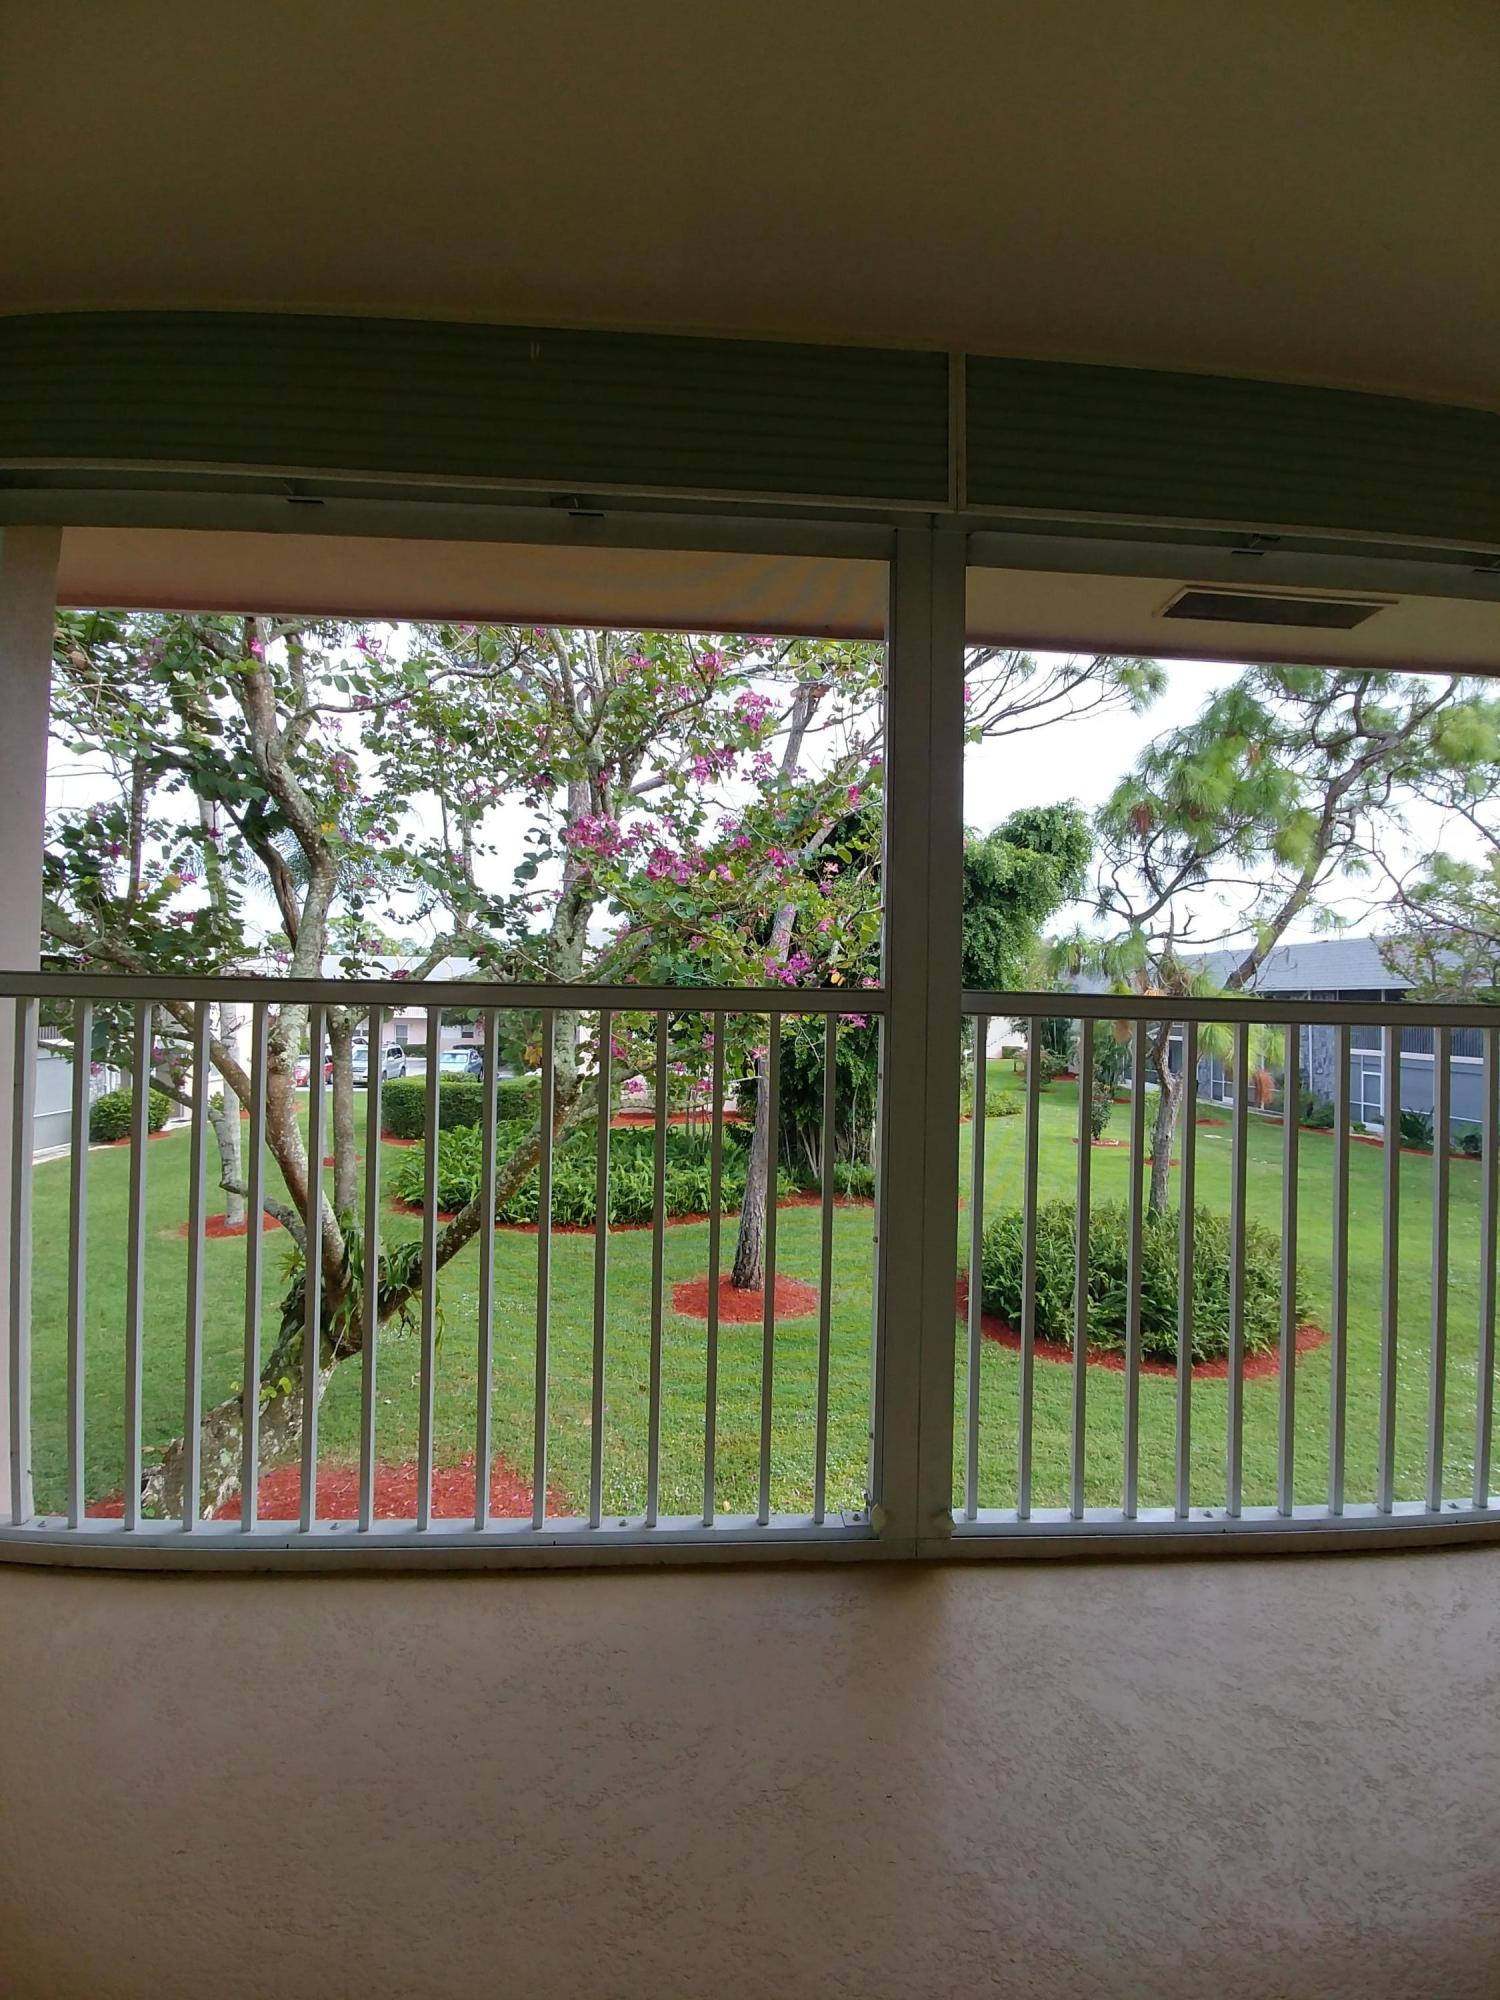 18081 Country Club Drive 66, Jupiter, Florida 33469, 2 Bedrooms Bedrooms, ,2 BathroomsBathrooms,A,Condominium,Country Club,RX-10482712